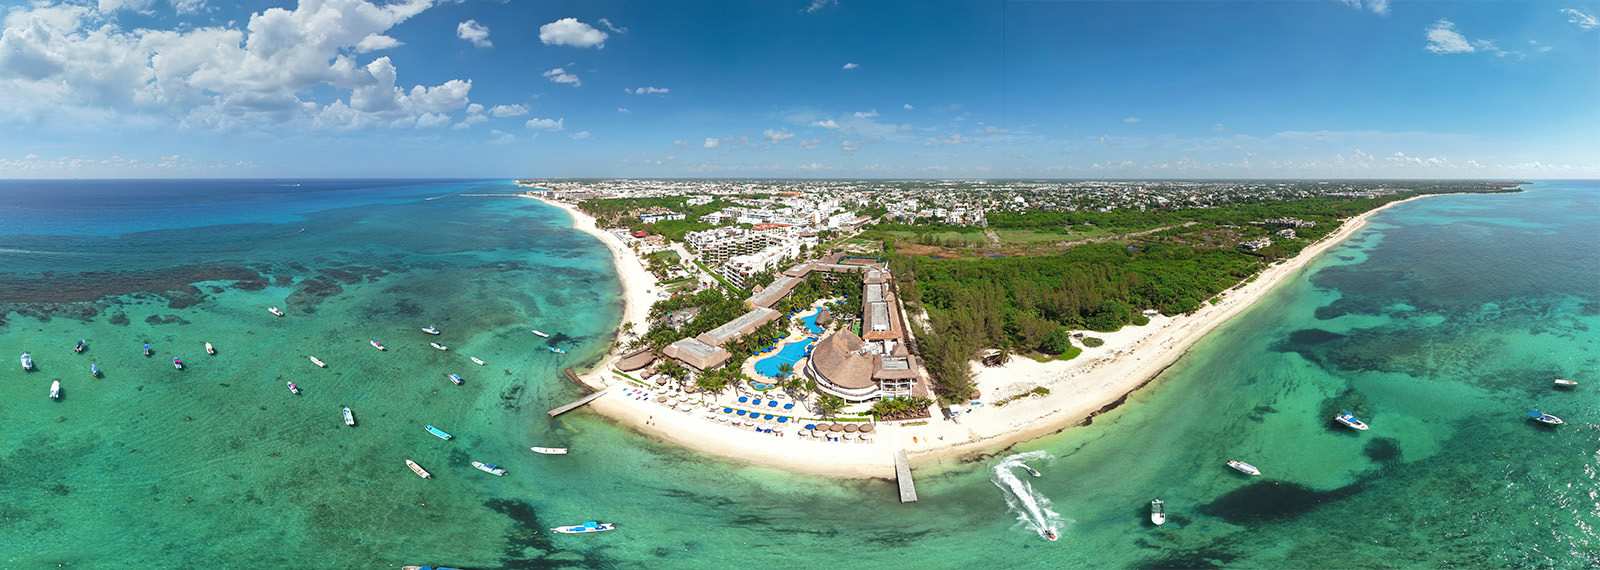 Playa del Carmen, Riviera Maya - Virtual tour